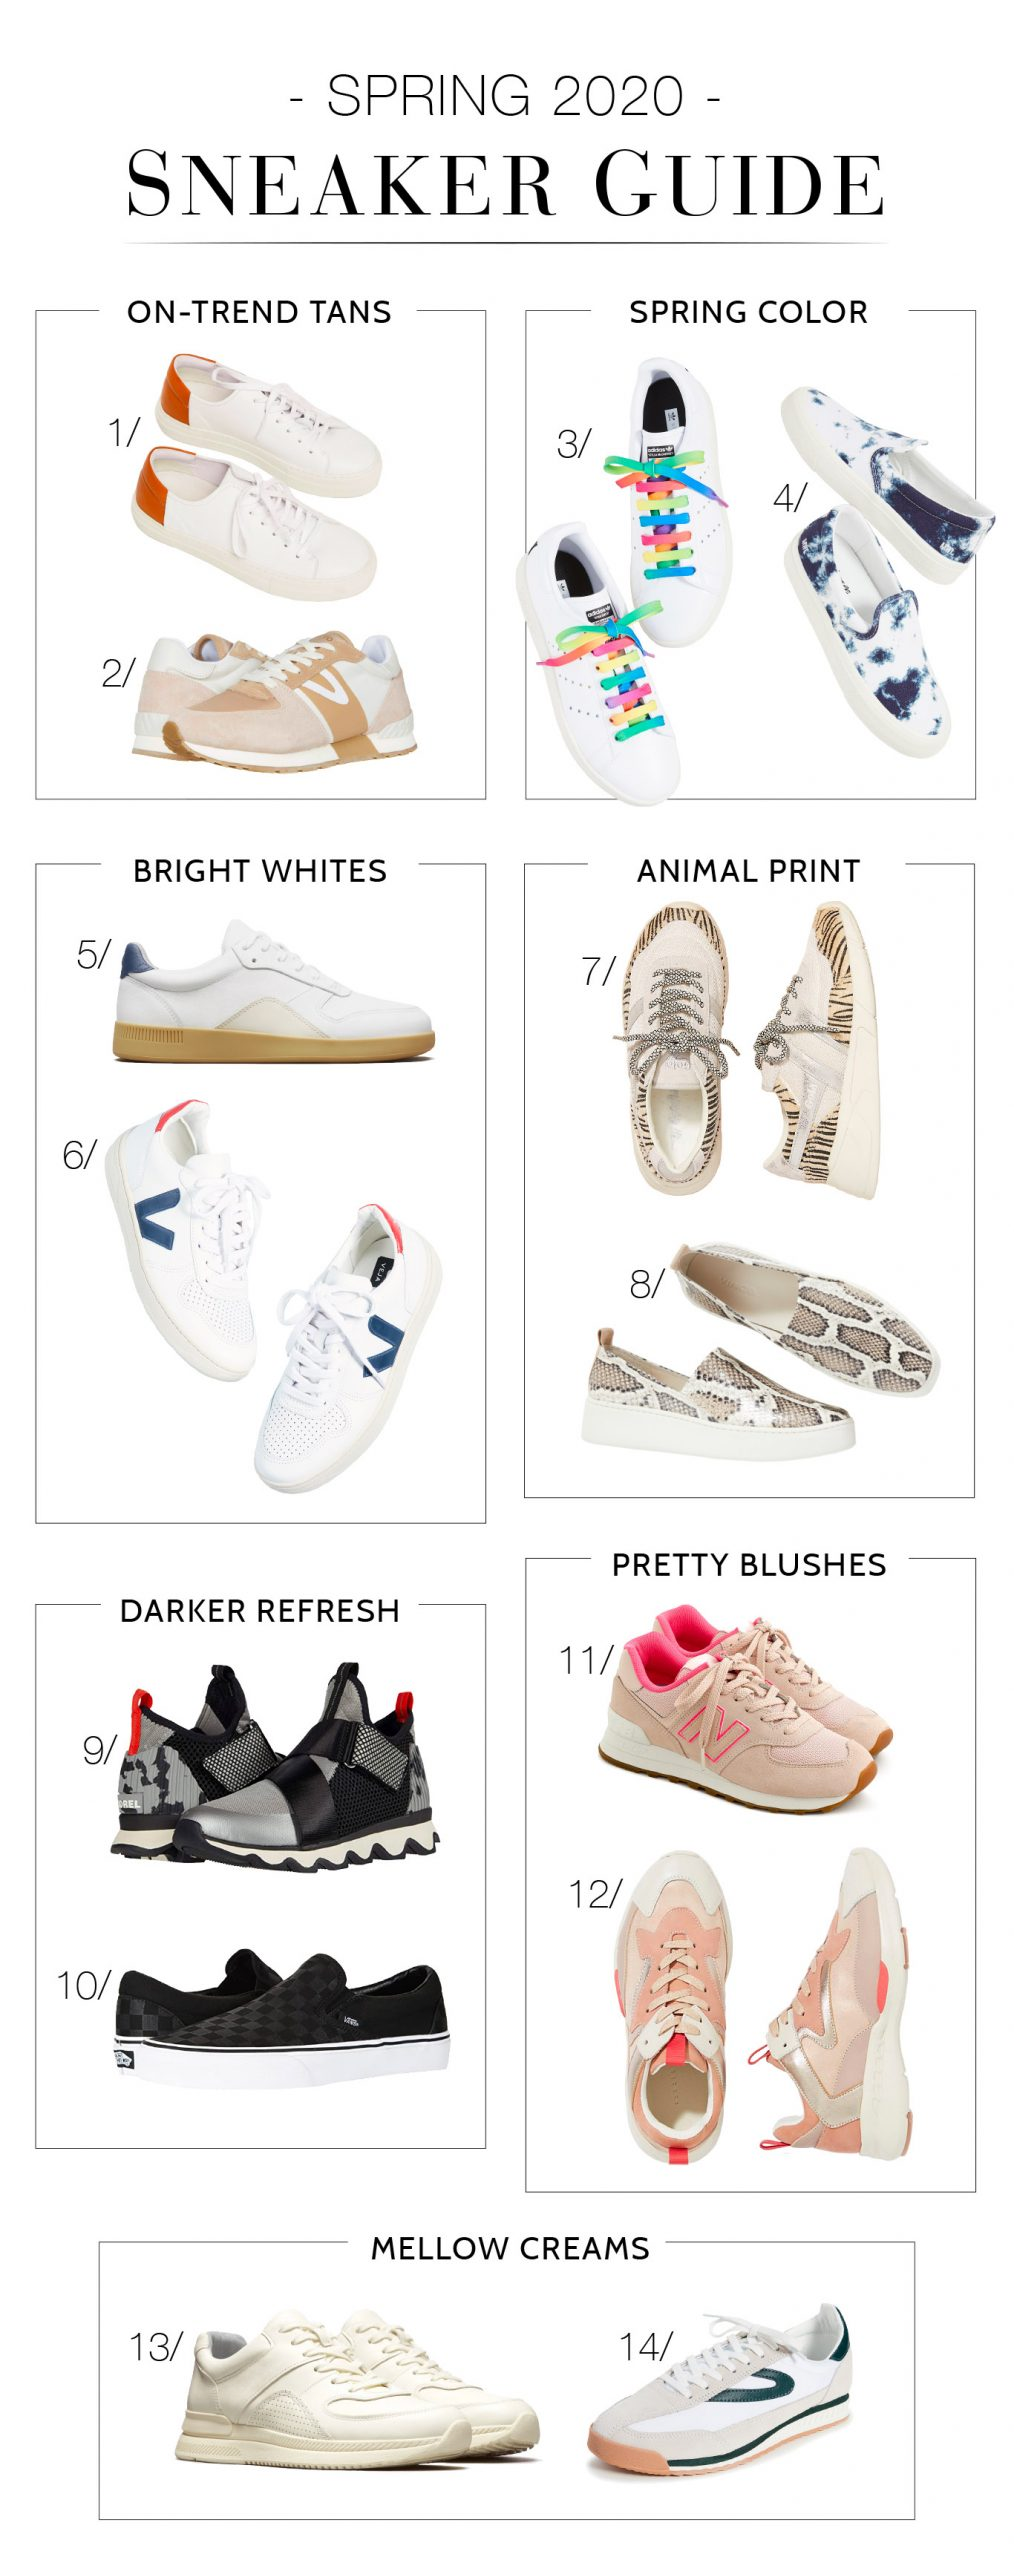 Cute fashion sneakers are a go-to — & a comfy 1, too. We're eyeing spring trends & colors, from tan to animal print, from Veja, Everlane, Adidas, Golden Goose & more.